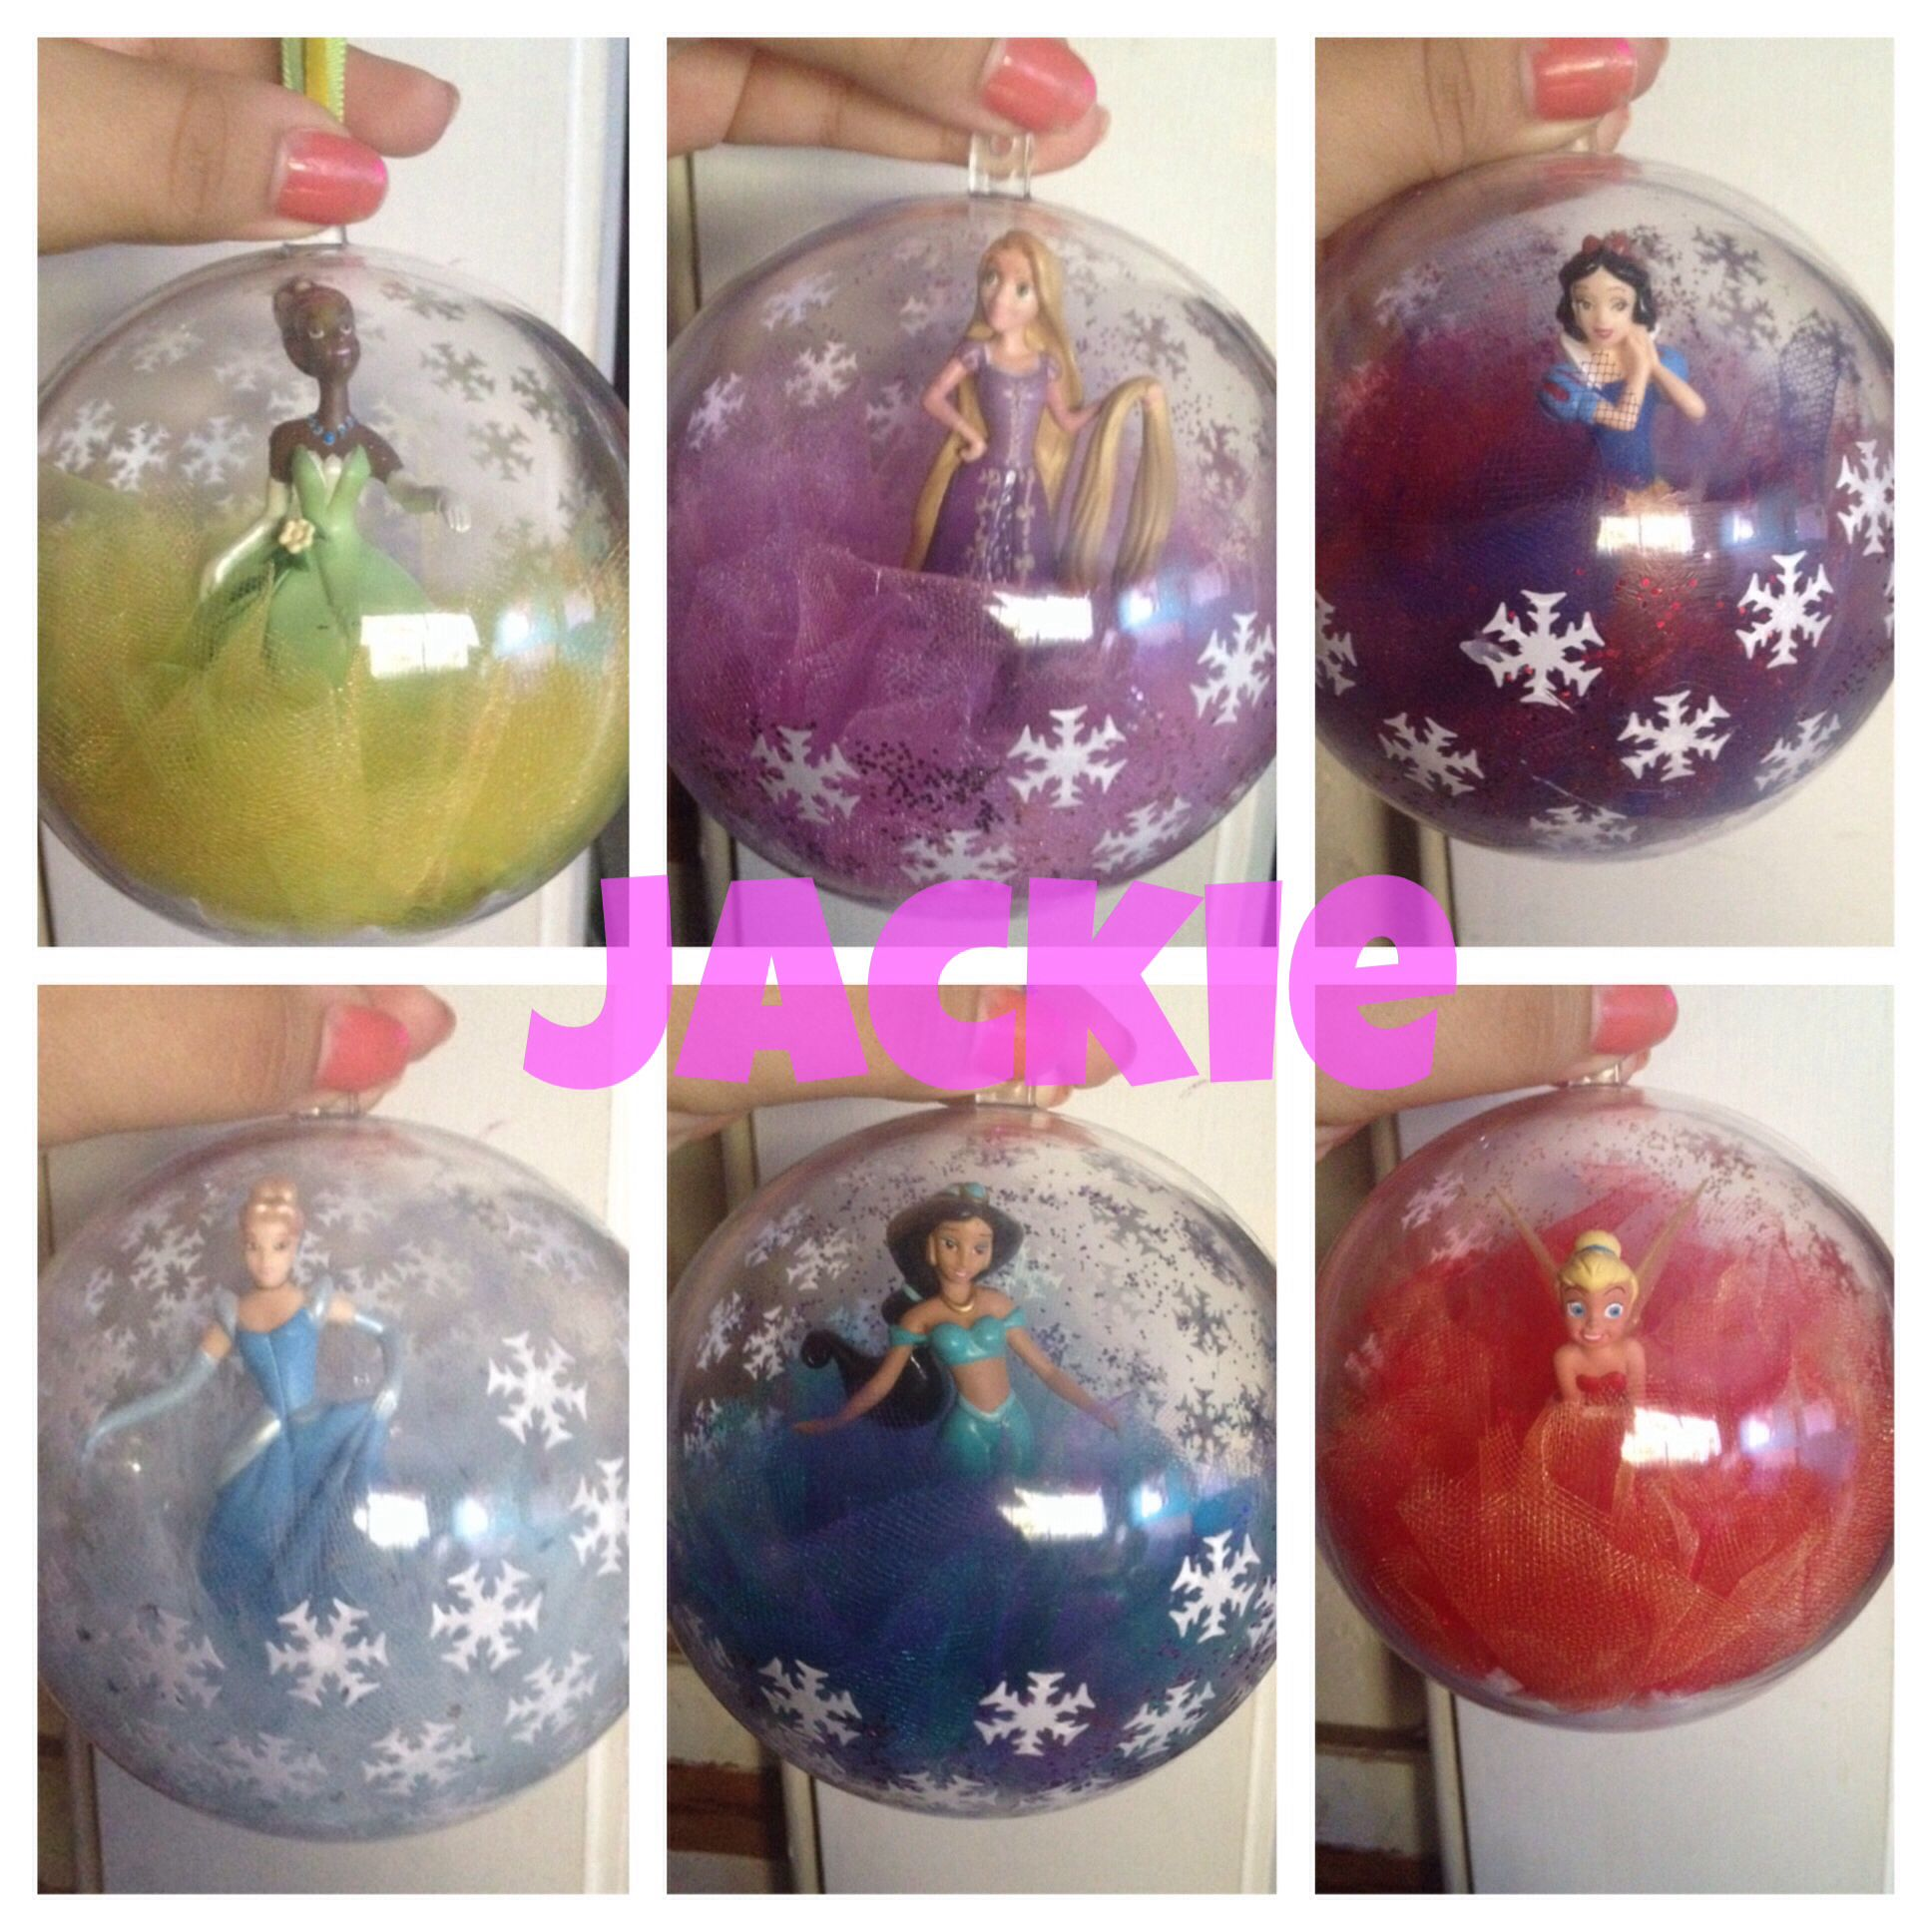 Disney Princess Ornaments Still In The Process Of Finishing The Other 5 But Don T Disney Christmas Decorations Disney Christmas Ornaments Disney Christmas Diy